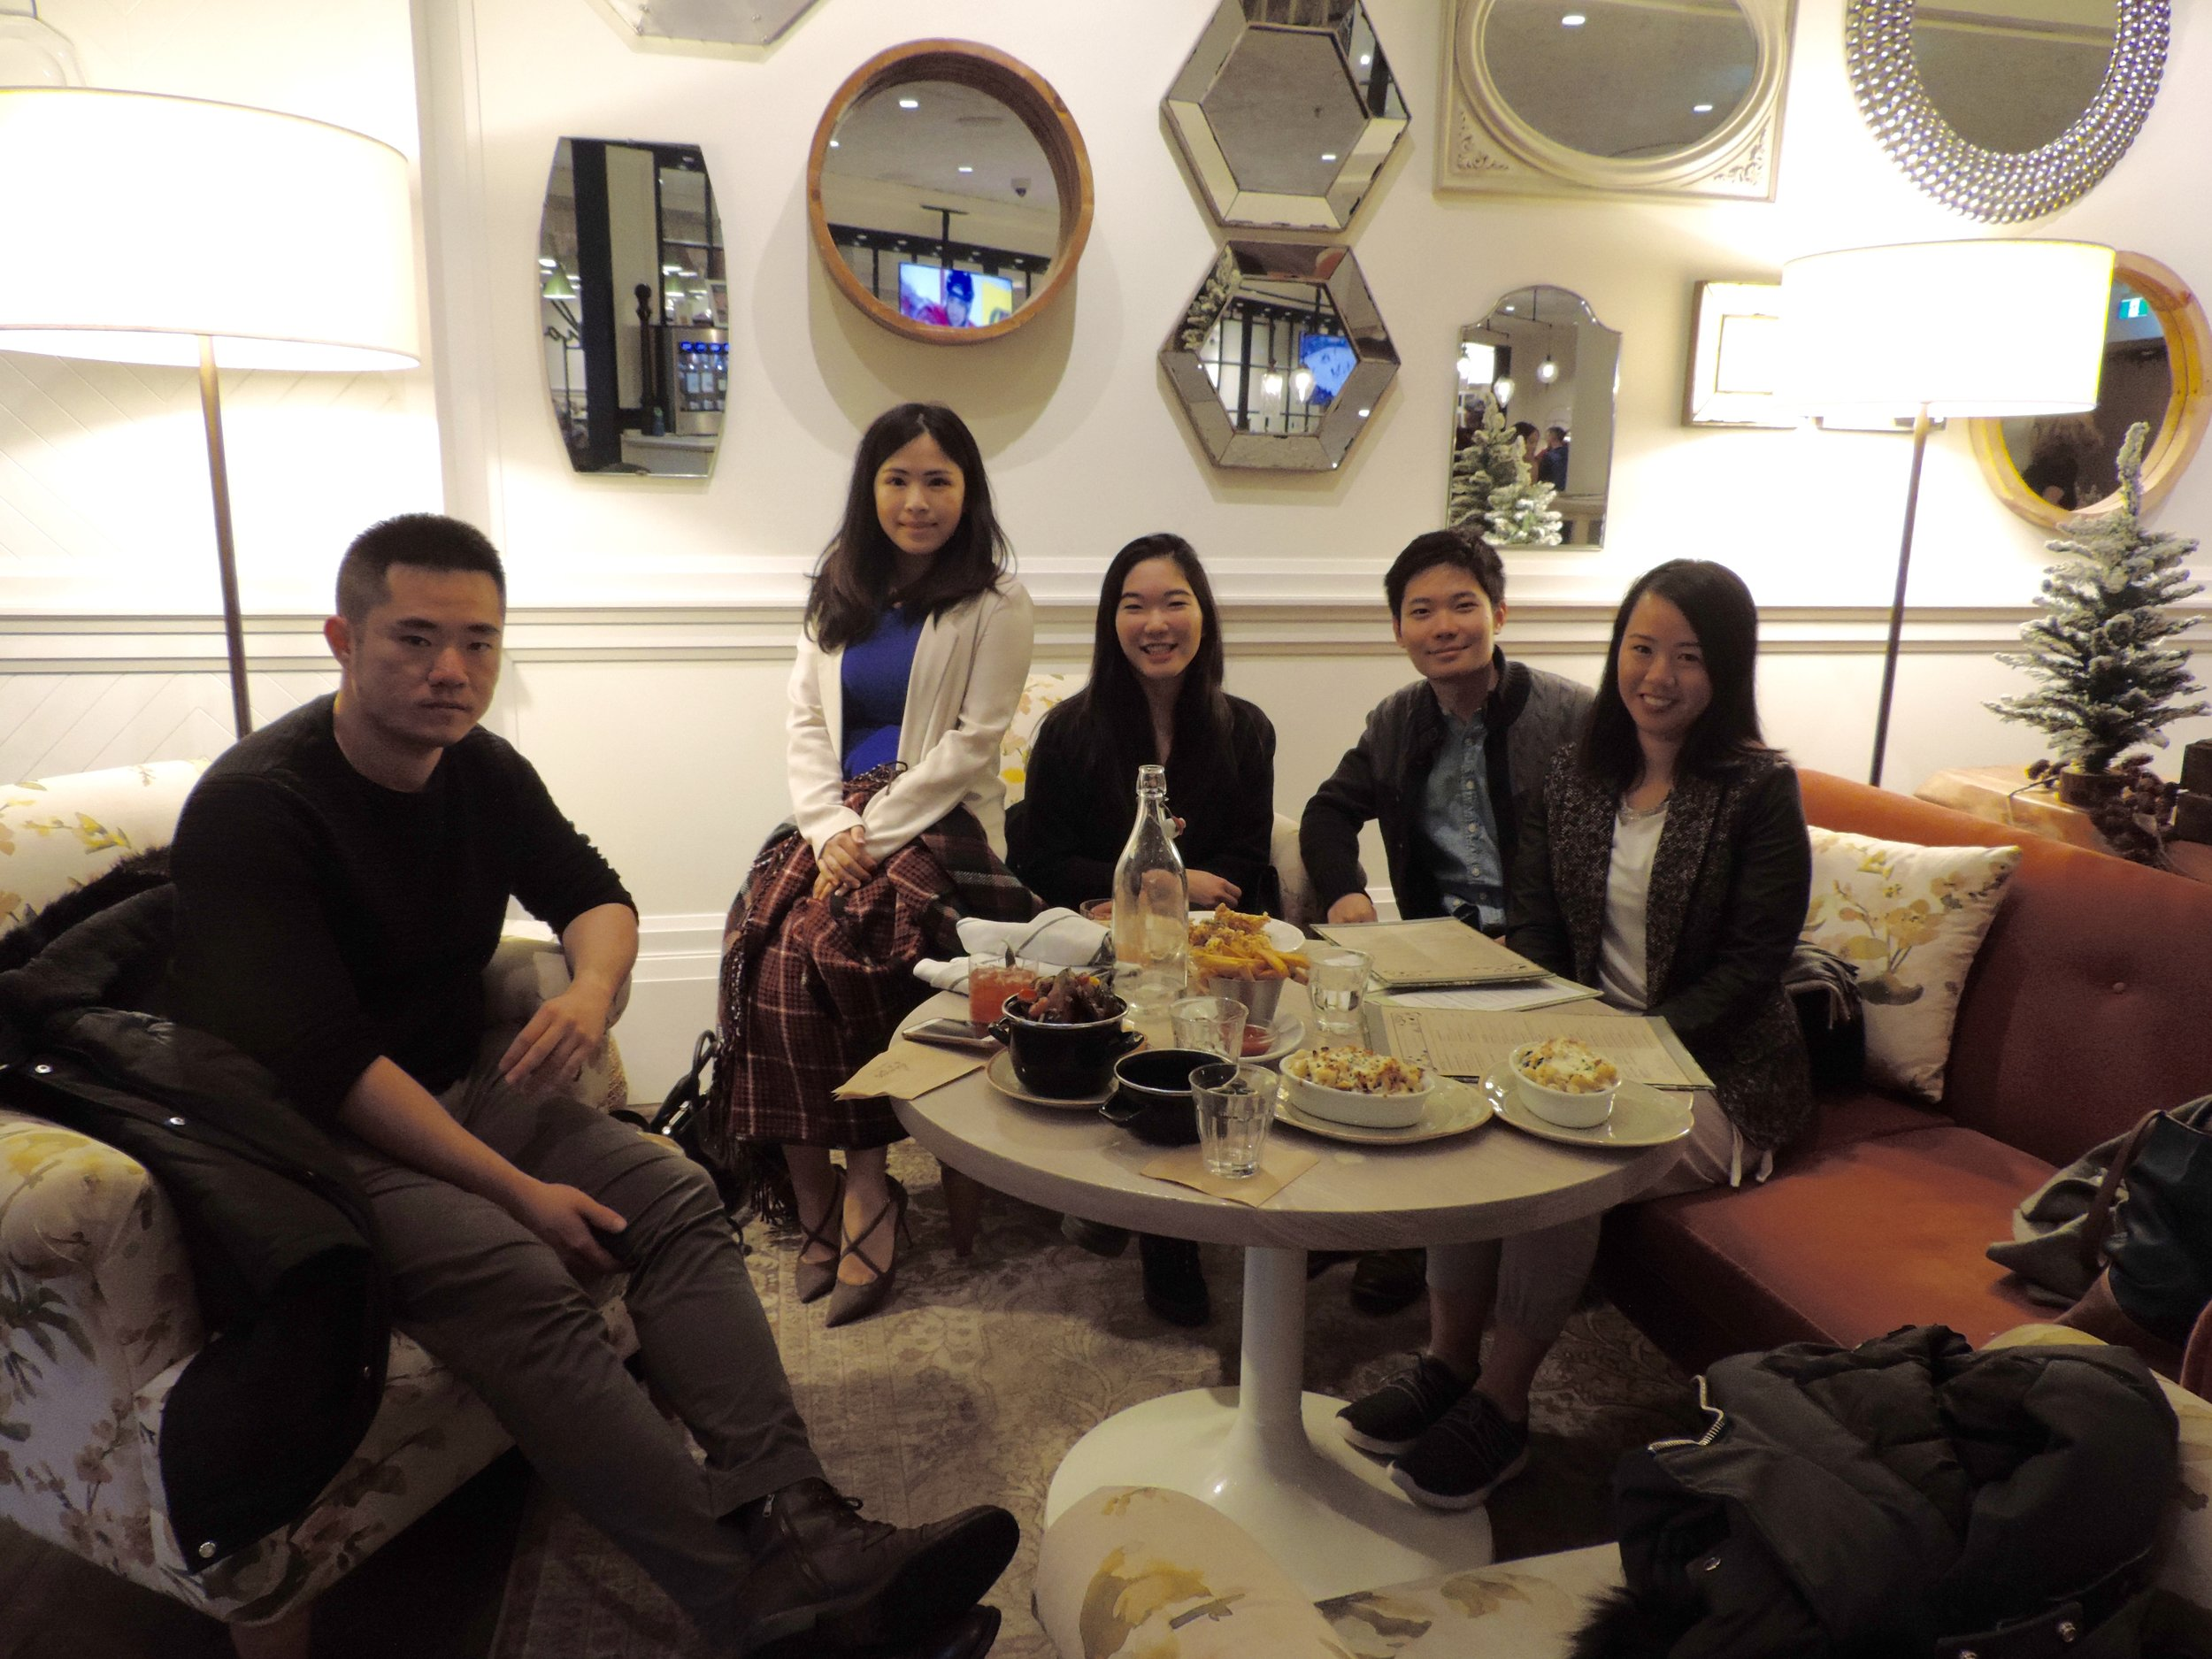 Our happy and ready-to-dine group, missing our very energetic go-getter friend Jen Liu who was visiting from New York :D